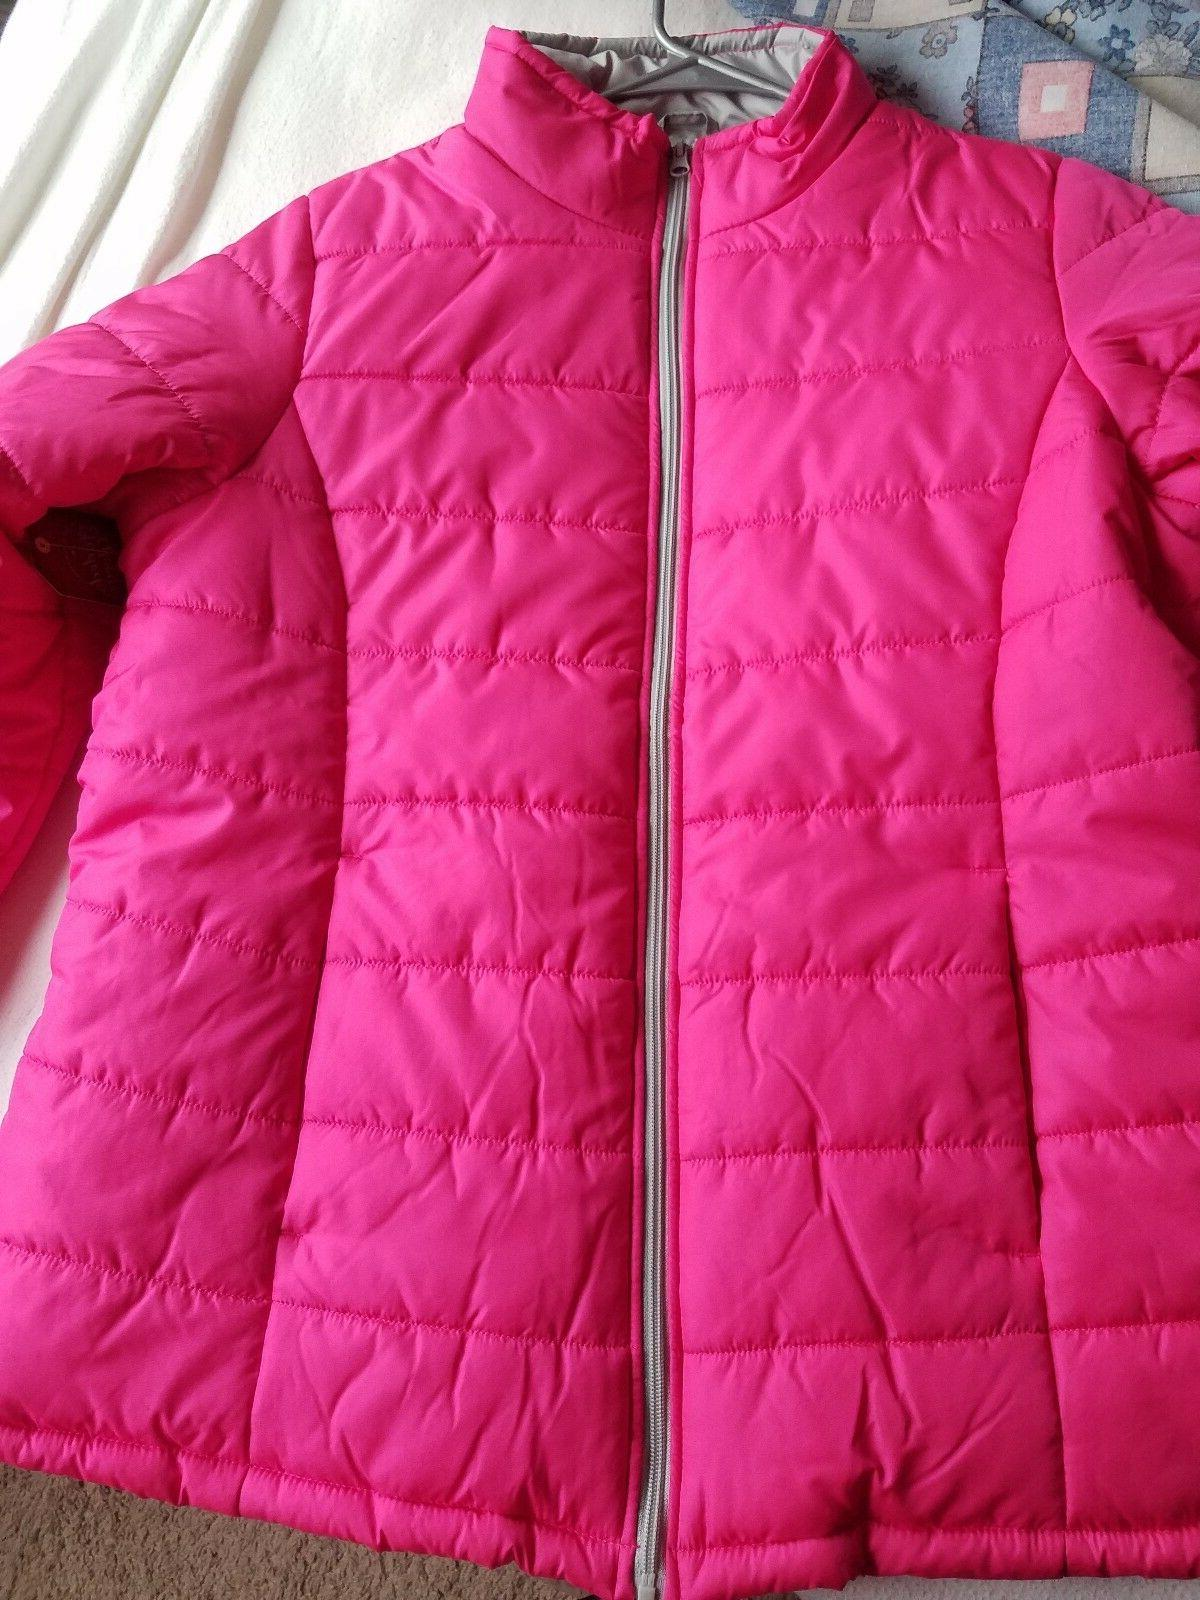 Maternity Lightweight Bubble Jacket womens Hot Pink